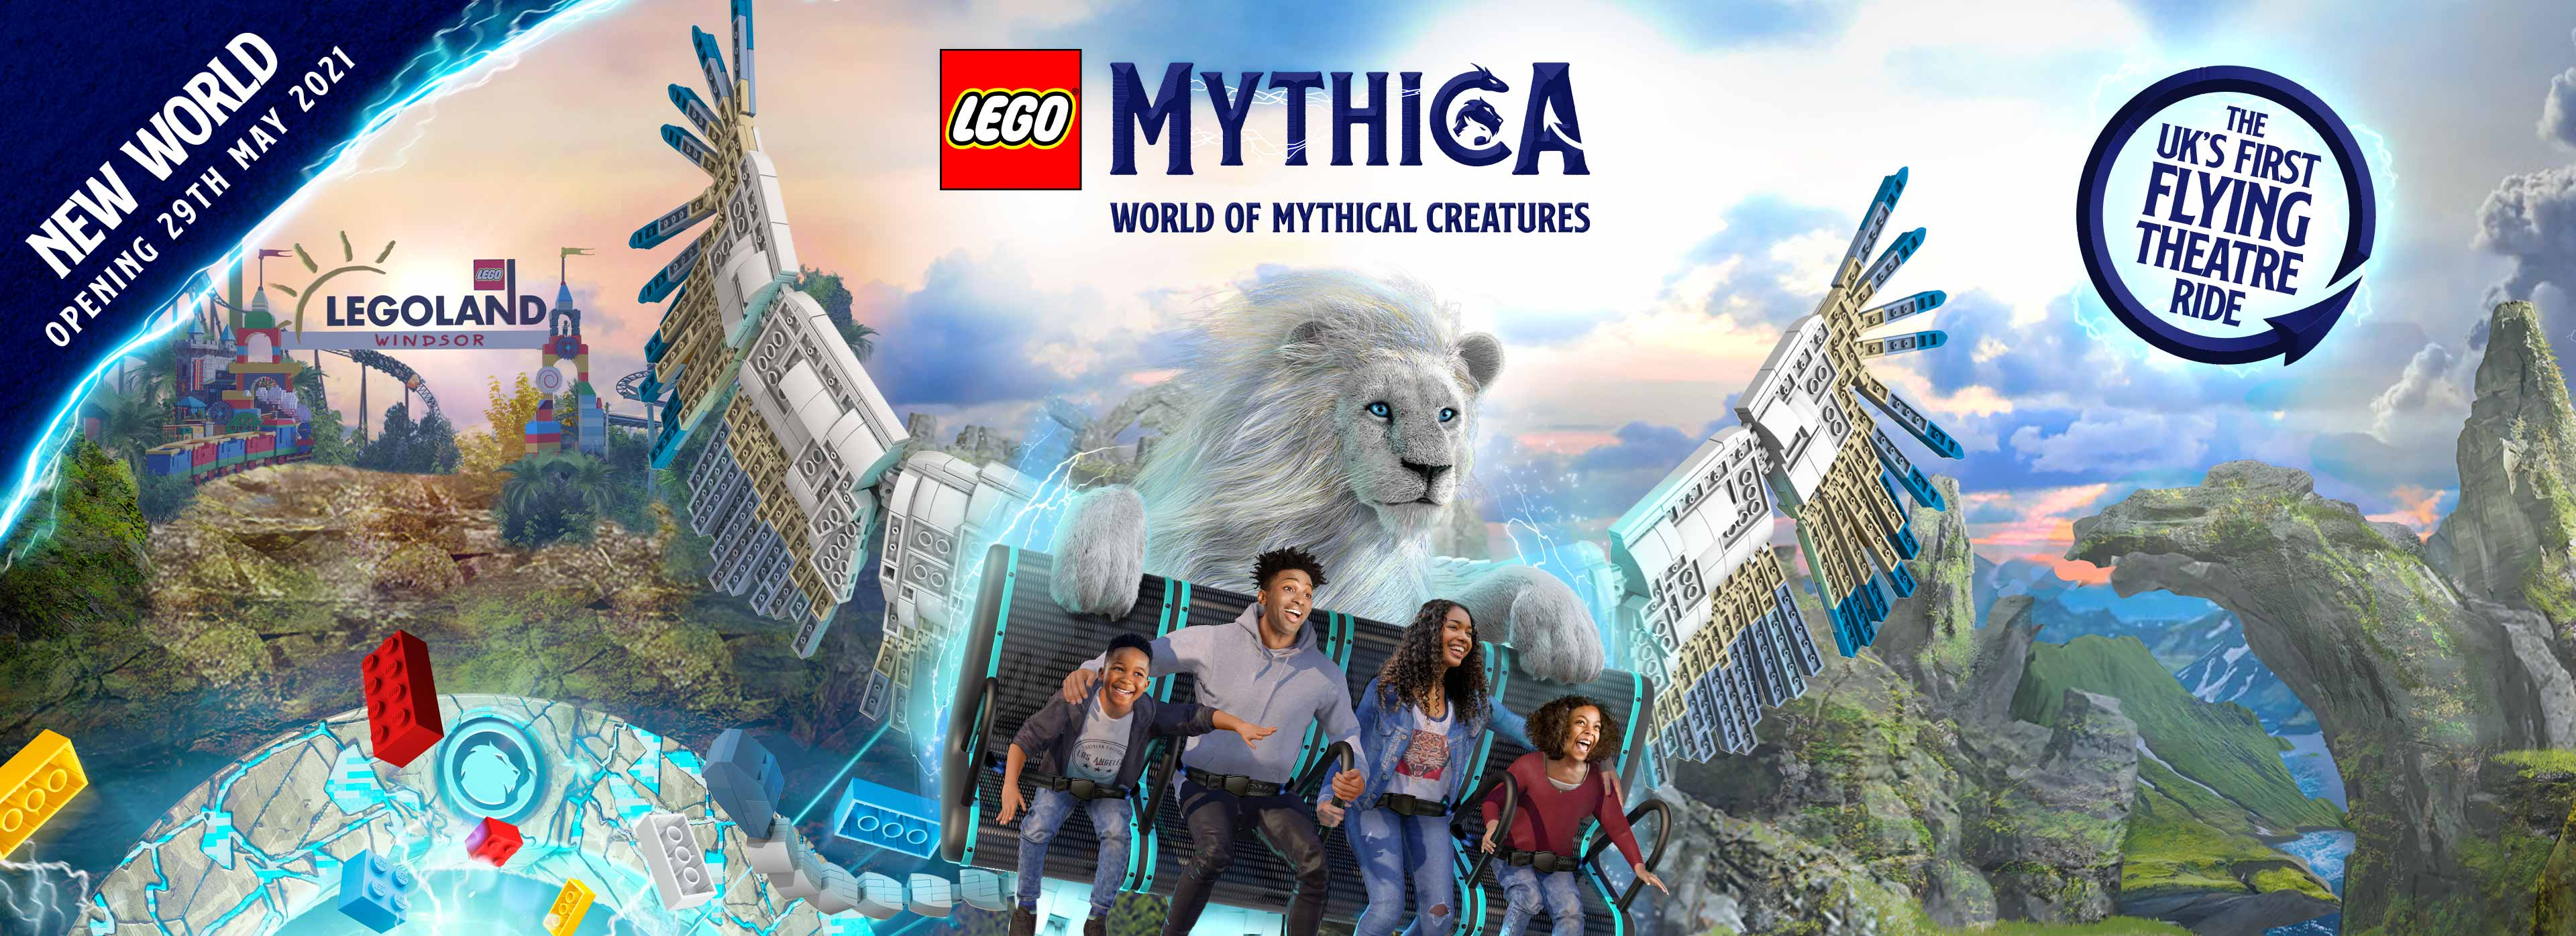 Brand new land, Mythica: World of Mythical Creatures at the LEGOLAND Windsor Resort